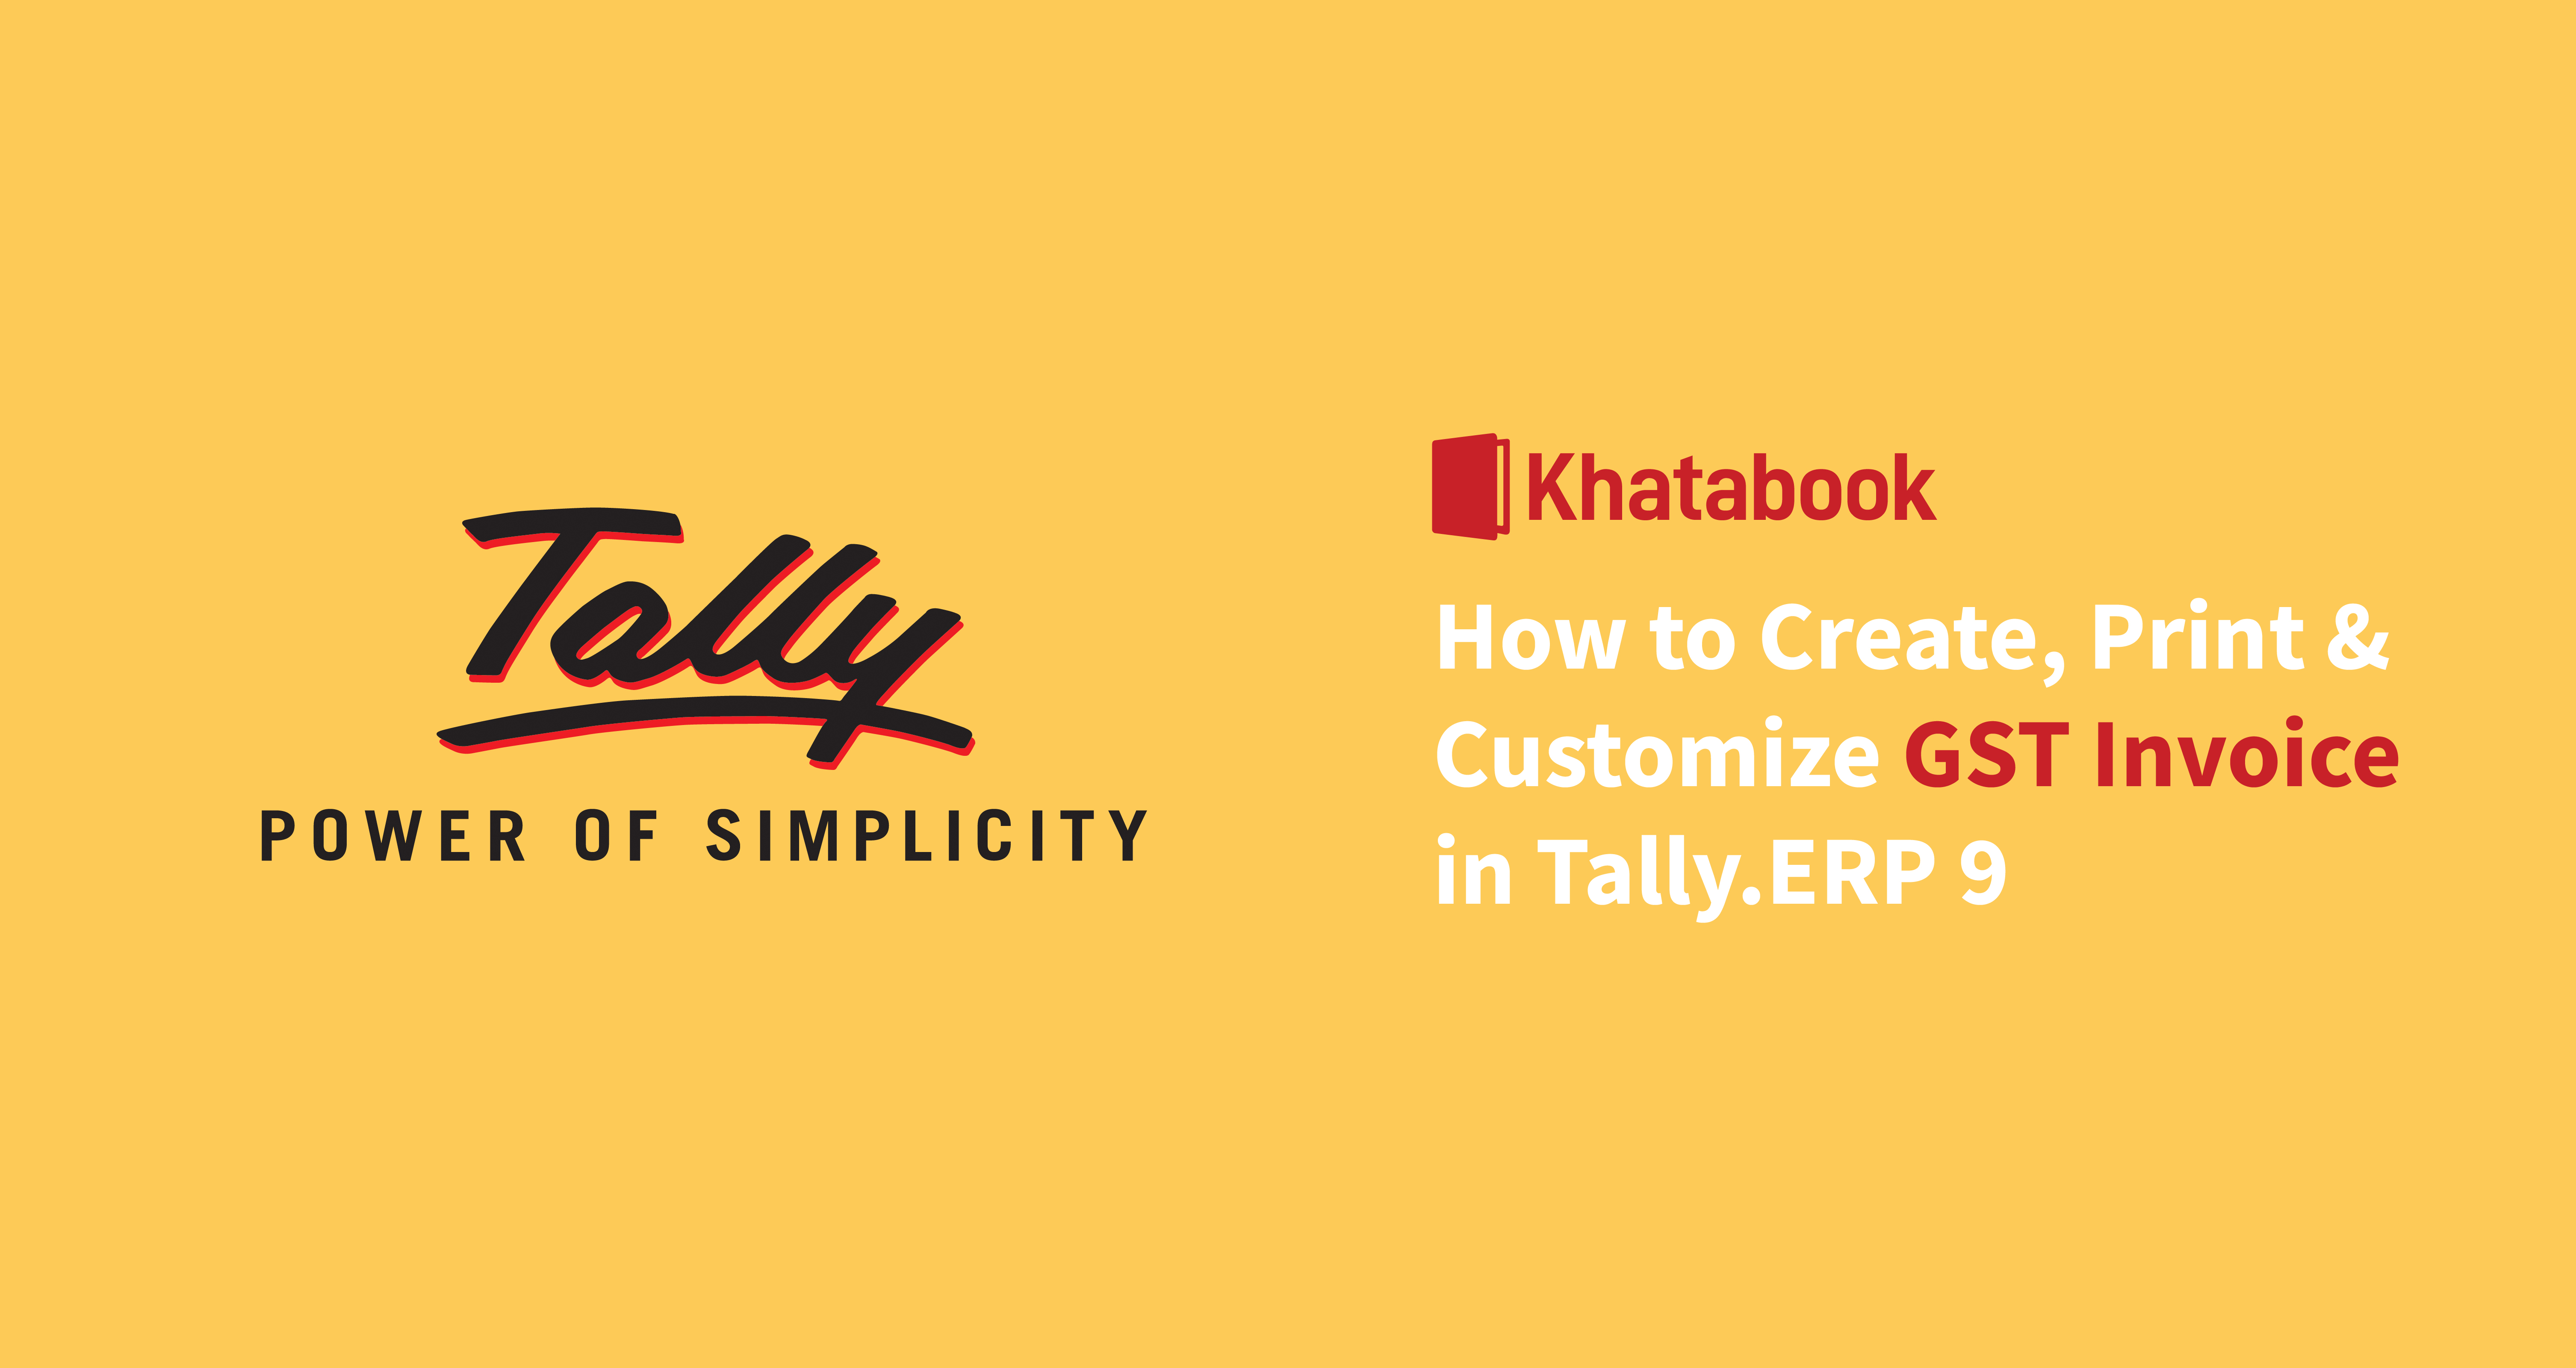 How to Generate, Print, and customize GST invoice In Your Tally ERP9